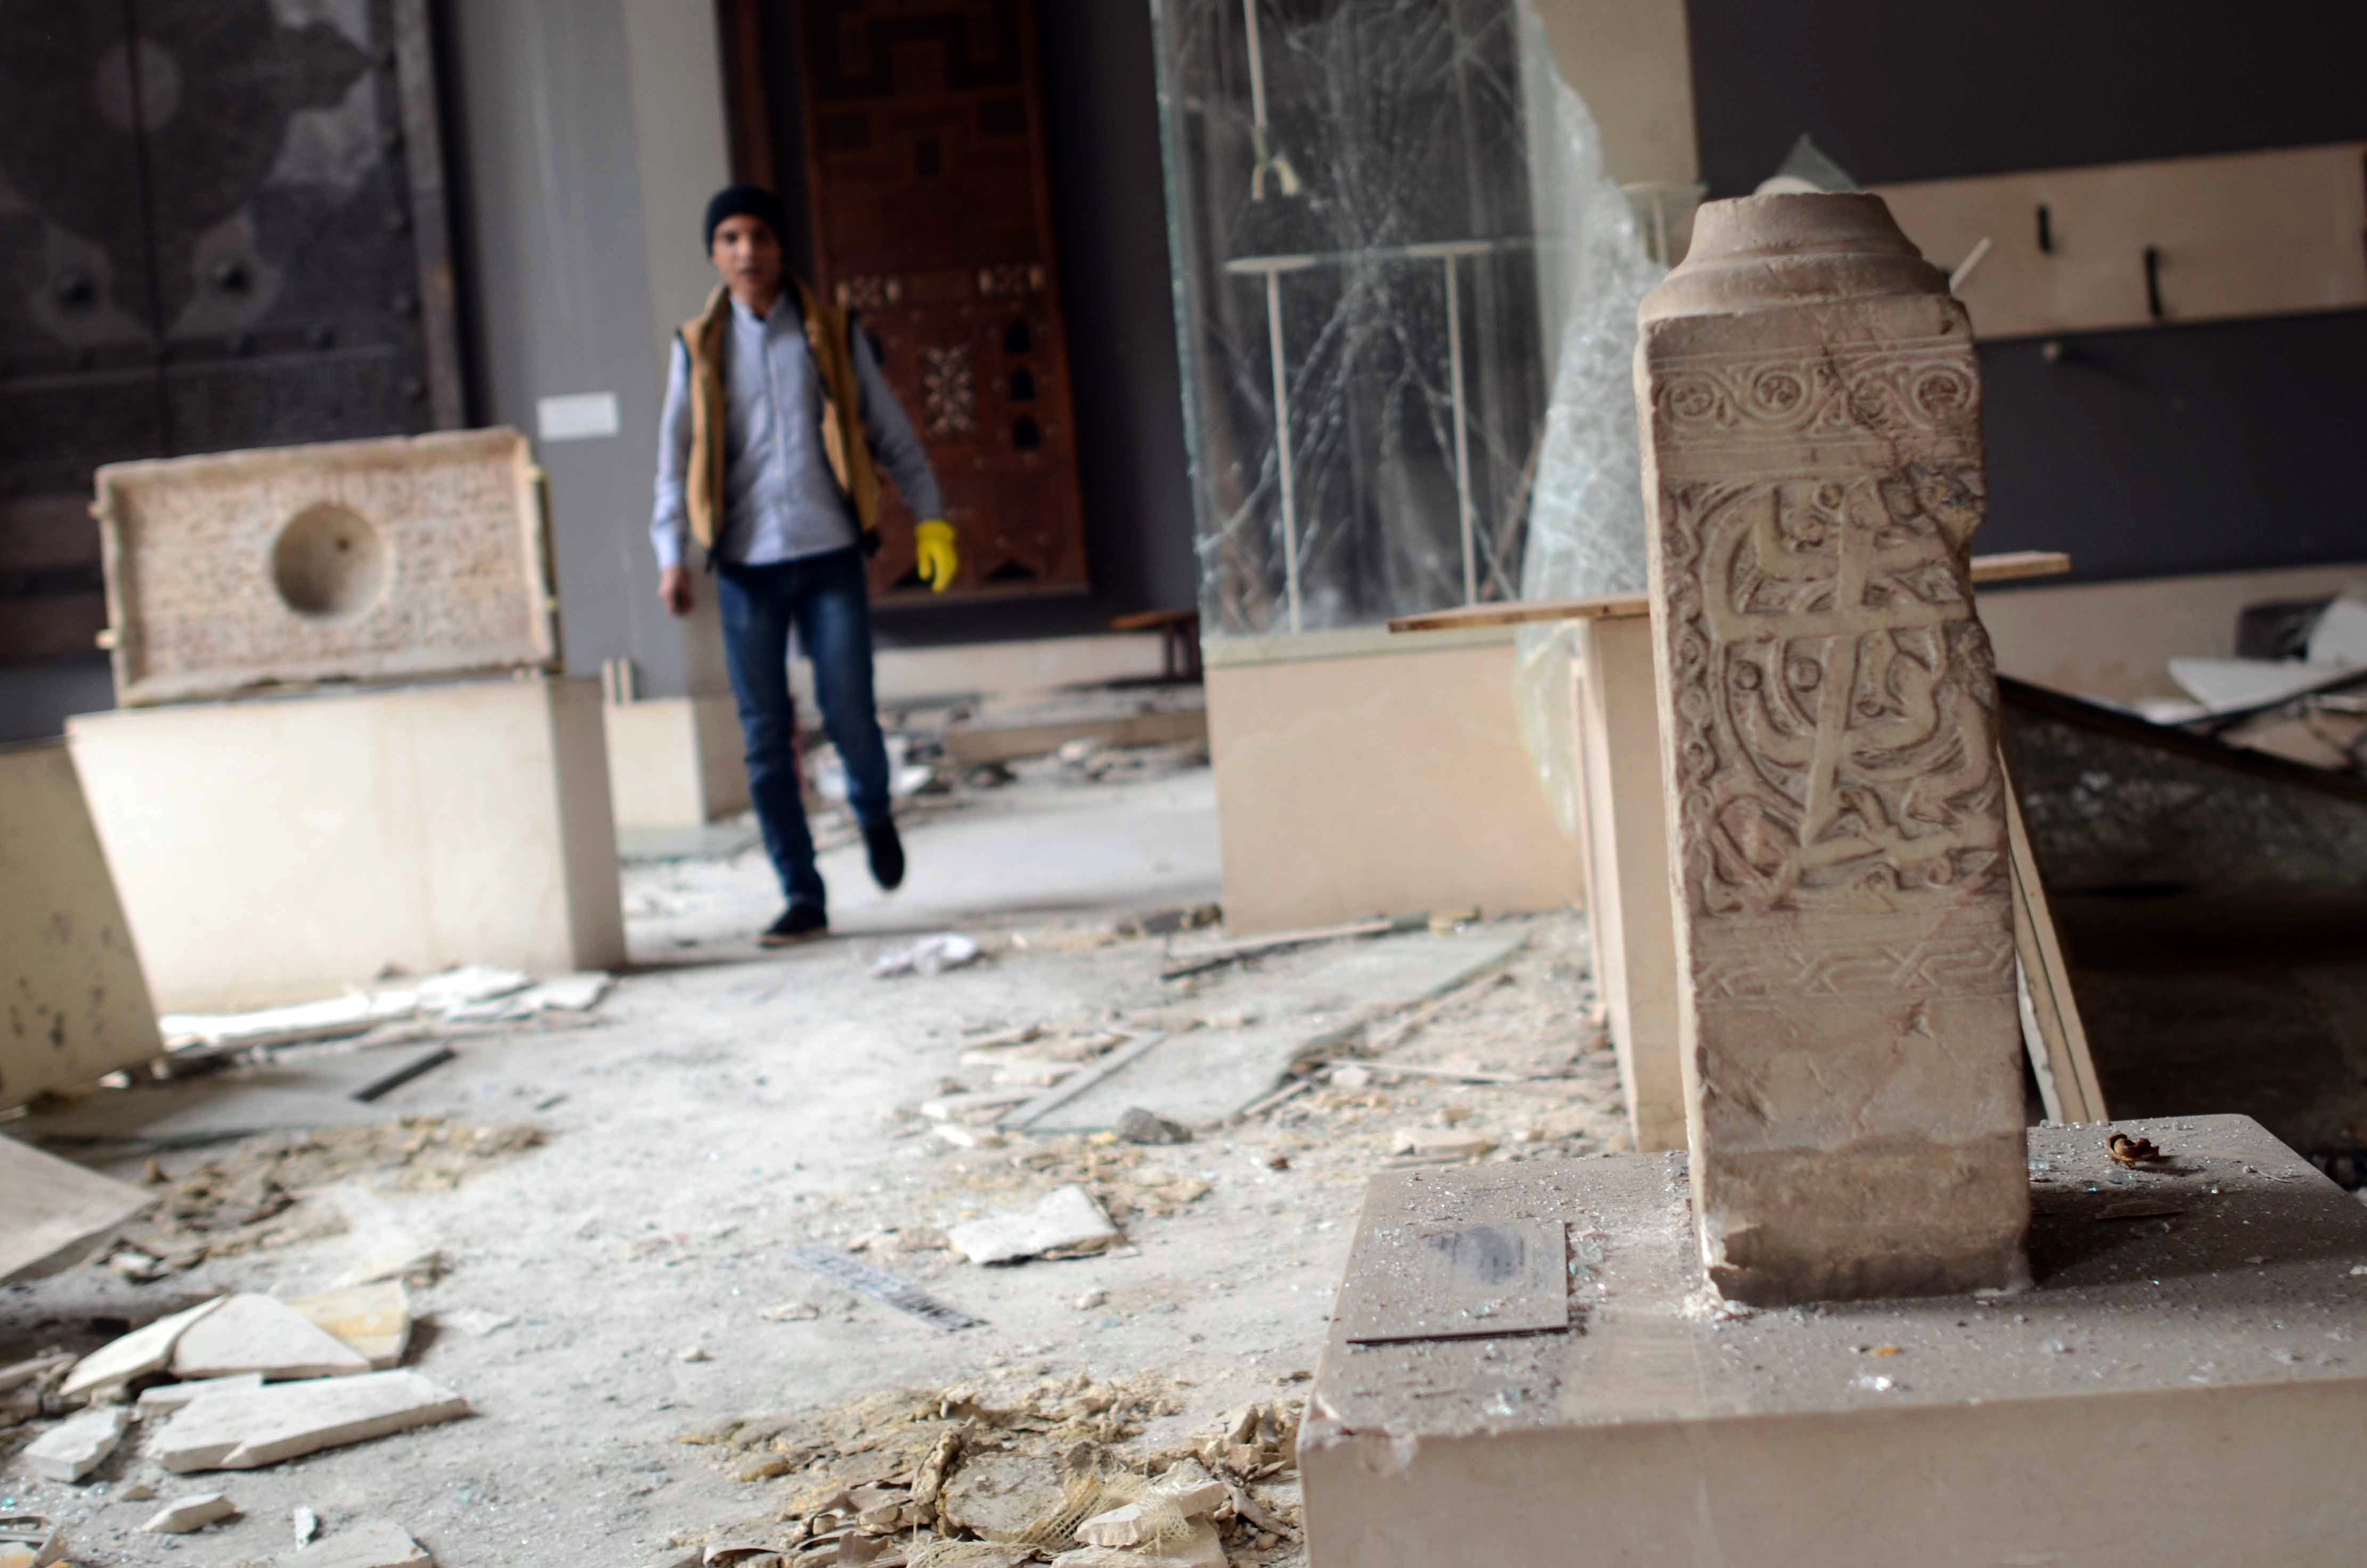 A worker inspects the damage in the Museum of Islamic Art in Cairo on January 26, 2014 after it was hit during a car bomb explosion outside the police headquarters near the museum on January 24 in the capital. The explosion, which happened on the eve of of the anniversary of the 2011 uprising, brought down the museum's ceilings and damaged exhibits.  (AFP PHOTO / MOHAMED EL-SHAHED)